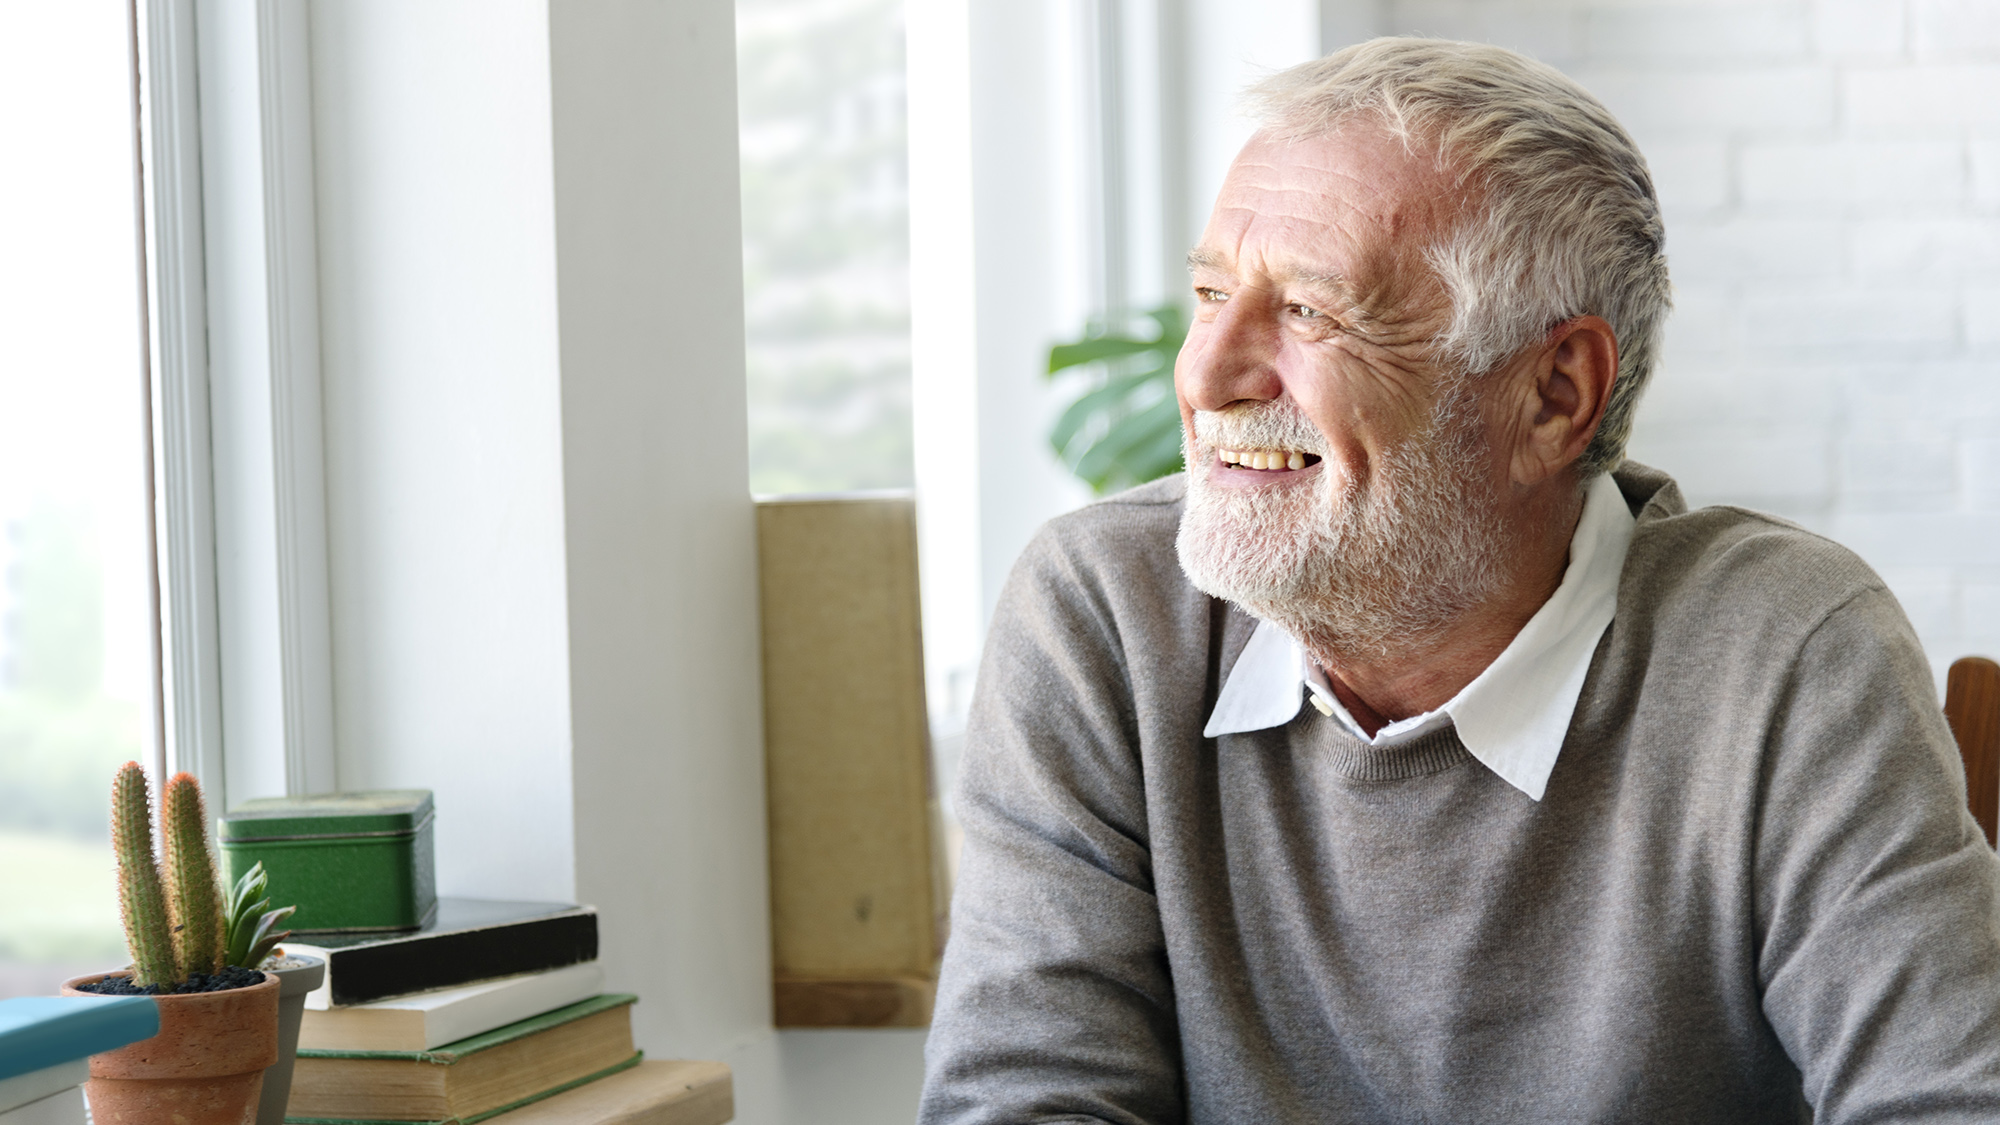 Elderly person who performs adult cognitive stimulation to improve their cognitive abilities and train the brain